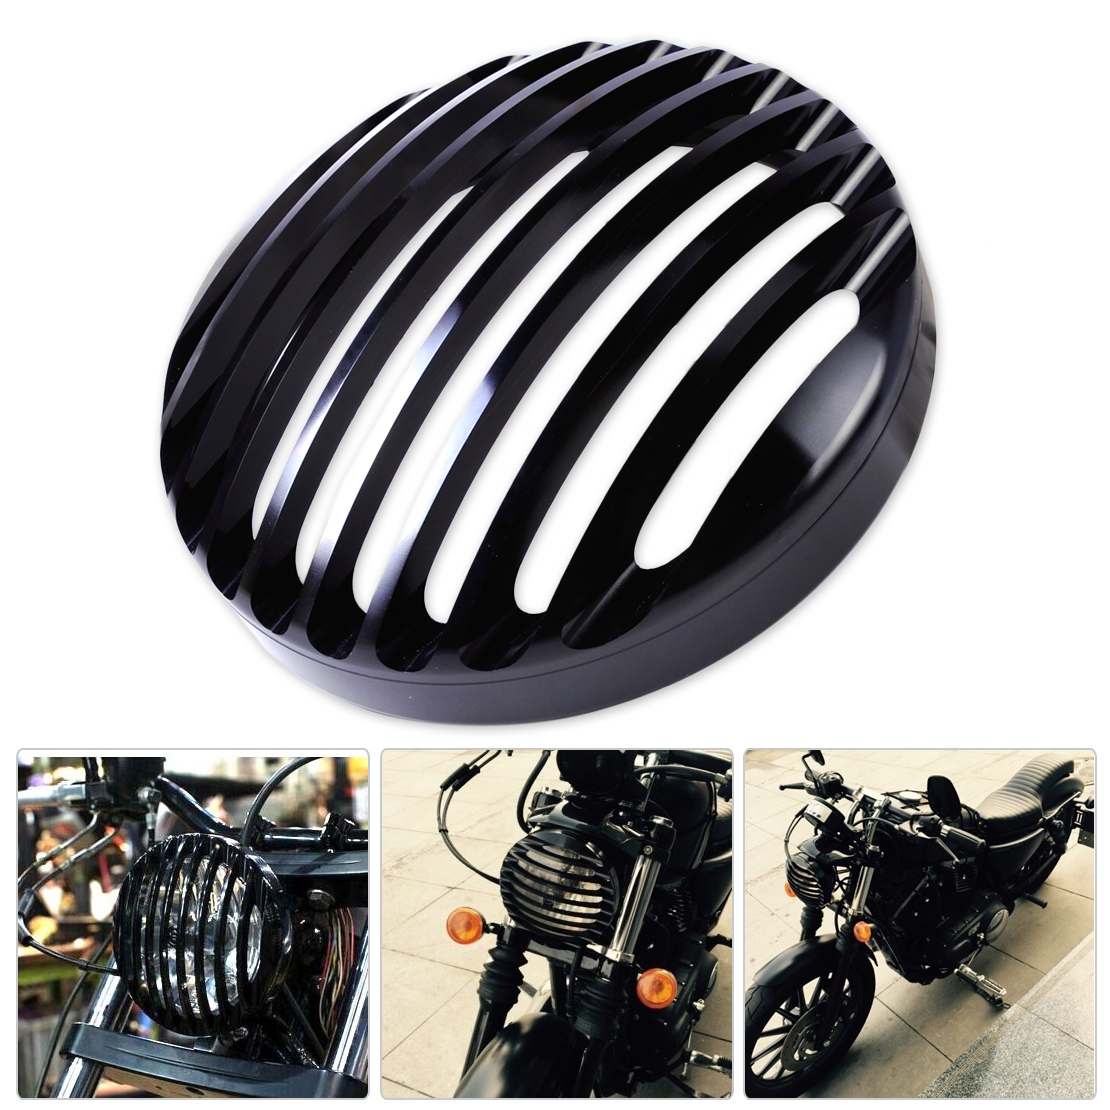 1pc New Black Aluminum Headlight Grill Cover for Harley Davidson Sportster XL 883 1200 2004-2008 2009 2010 2011 2012 2013 2014 car rear trunk security shield shade cargo cover for nissan qashqai 2008 2009 2010 2011 2012 2013 black beige